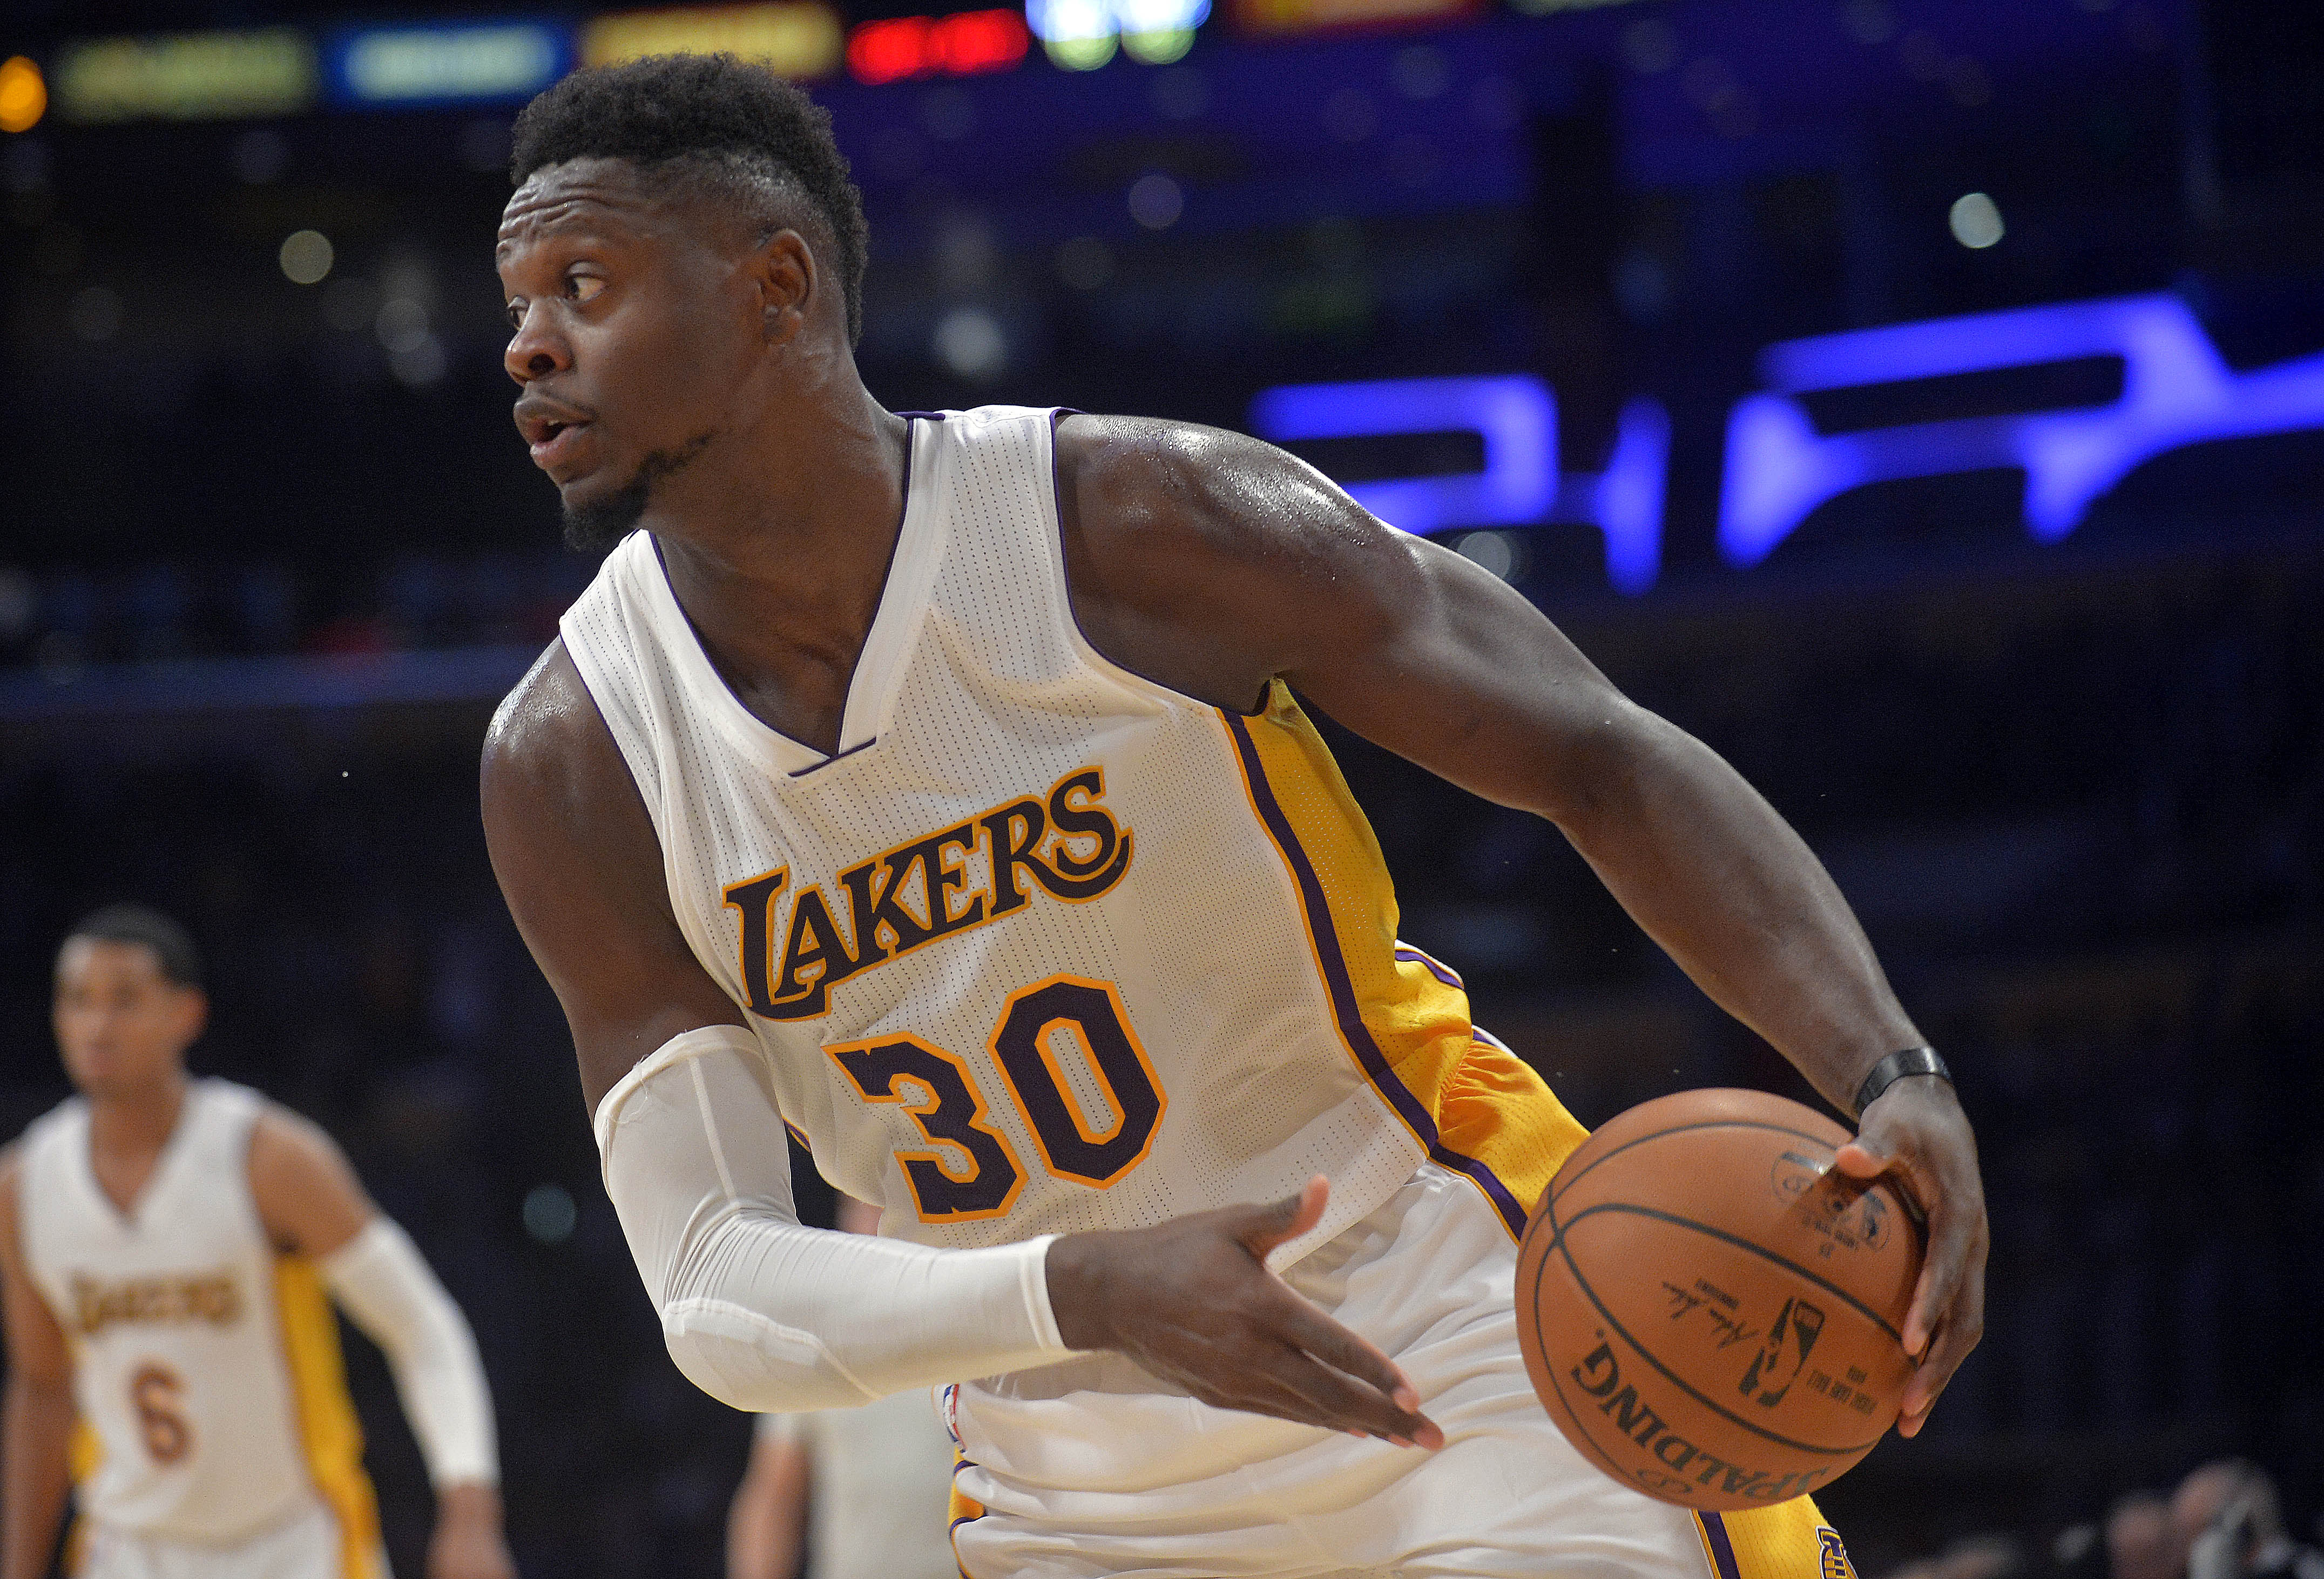 December 11, 2016; Los Angeles, CA, USA; Los Angeles Lakers forward Julius Randle (30) controls the ball against the New York Knicks during the second half at Staples Center. Mandatory Credit: Gary A. Vasquez-USA TODAY Sports